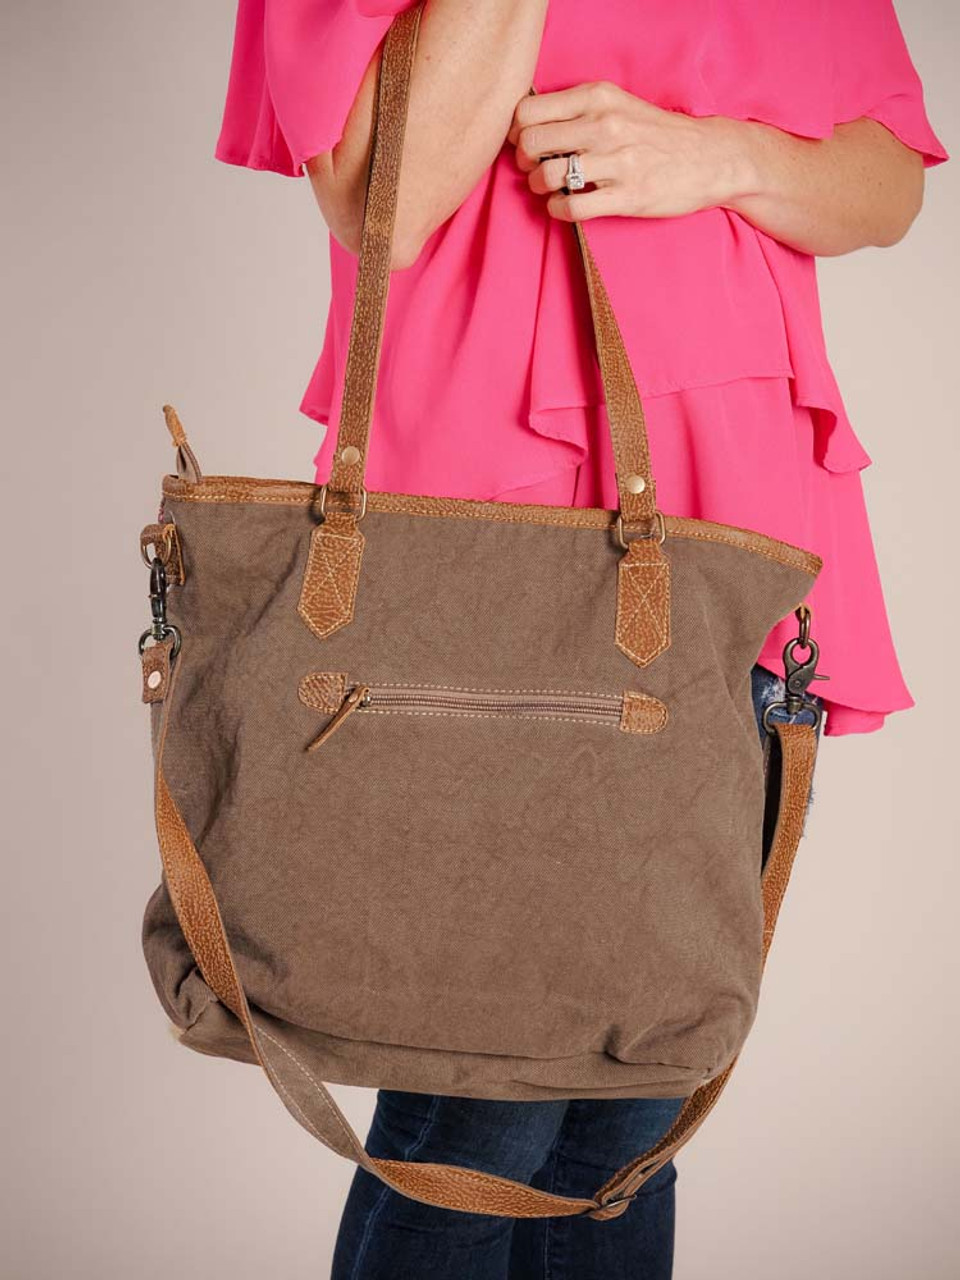 This brightly colored weekender bag has ample space to hold all your belongings for a short trip. Leather details; hairon accents at bottom of front; canvas back and bottom; zipper pocket on back; leather shoulder straps and adjustable/detachable crossbody strap; zipper close; fully lined inside with a zipper pocket and two slip pockets.